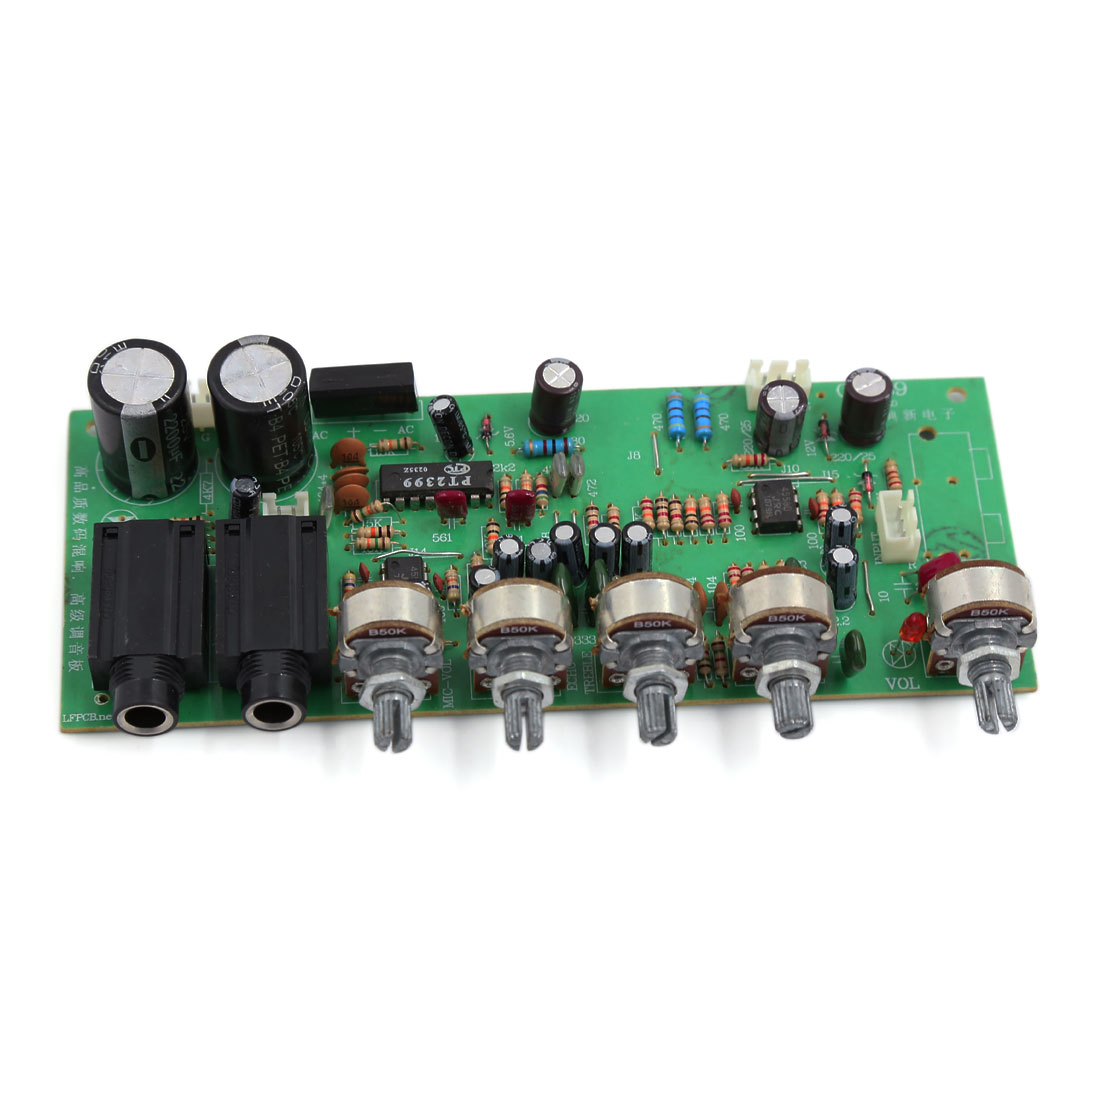 12V Karaoke Car Hi-Fi Digital Stereo Audio Power Amplifier Volume Tone Control Board